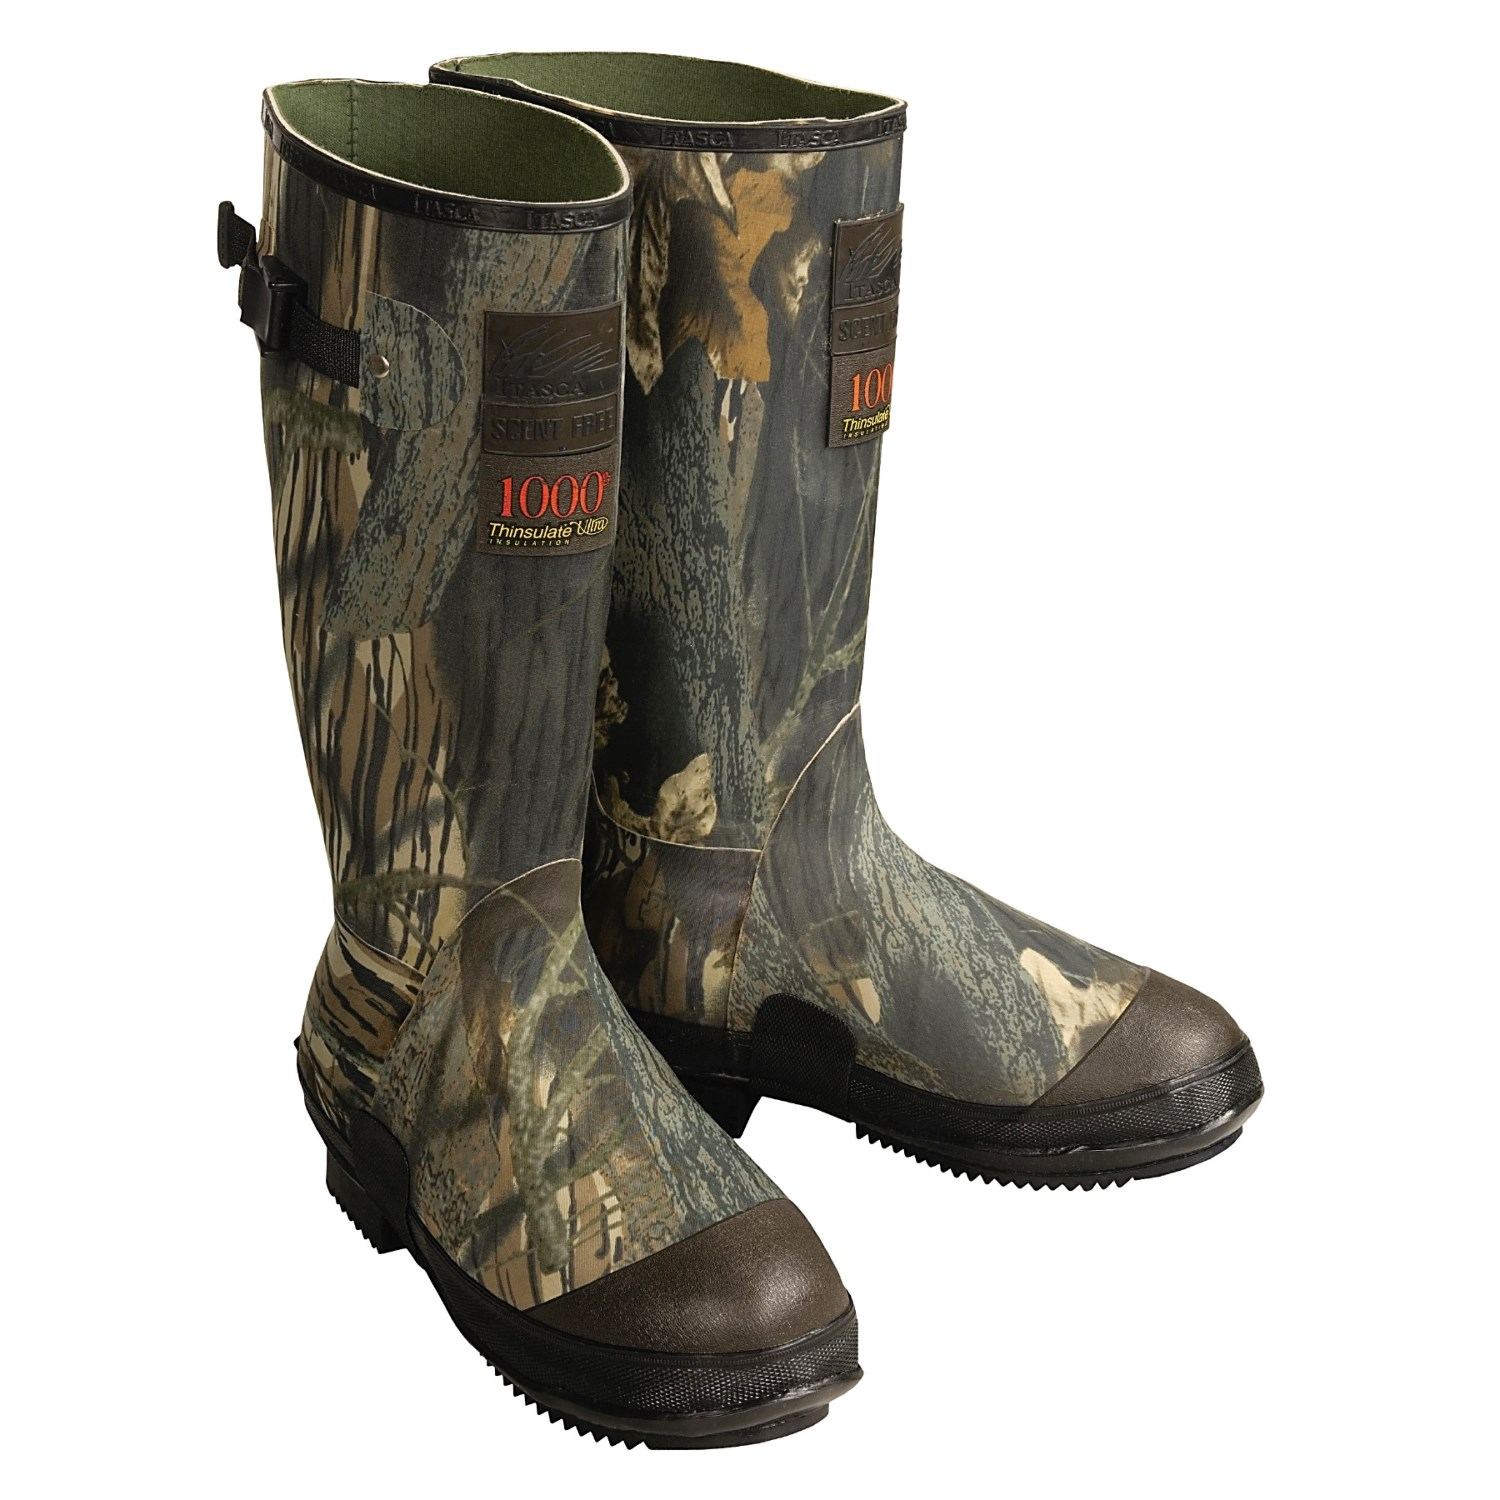 Insulated Rubber Boots For Men